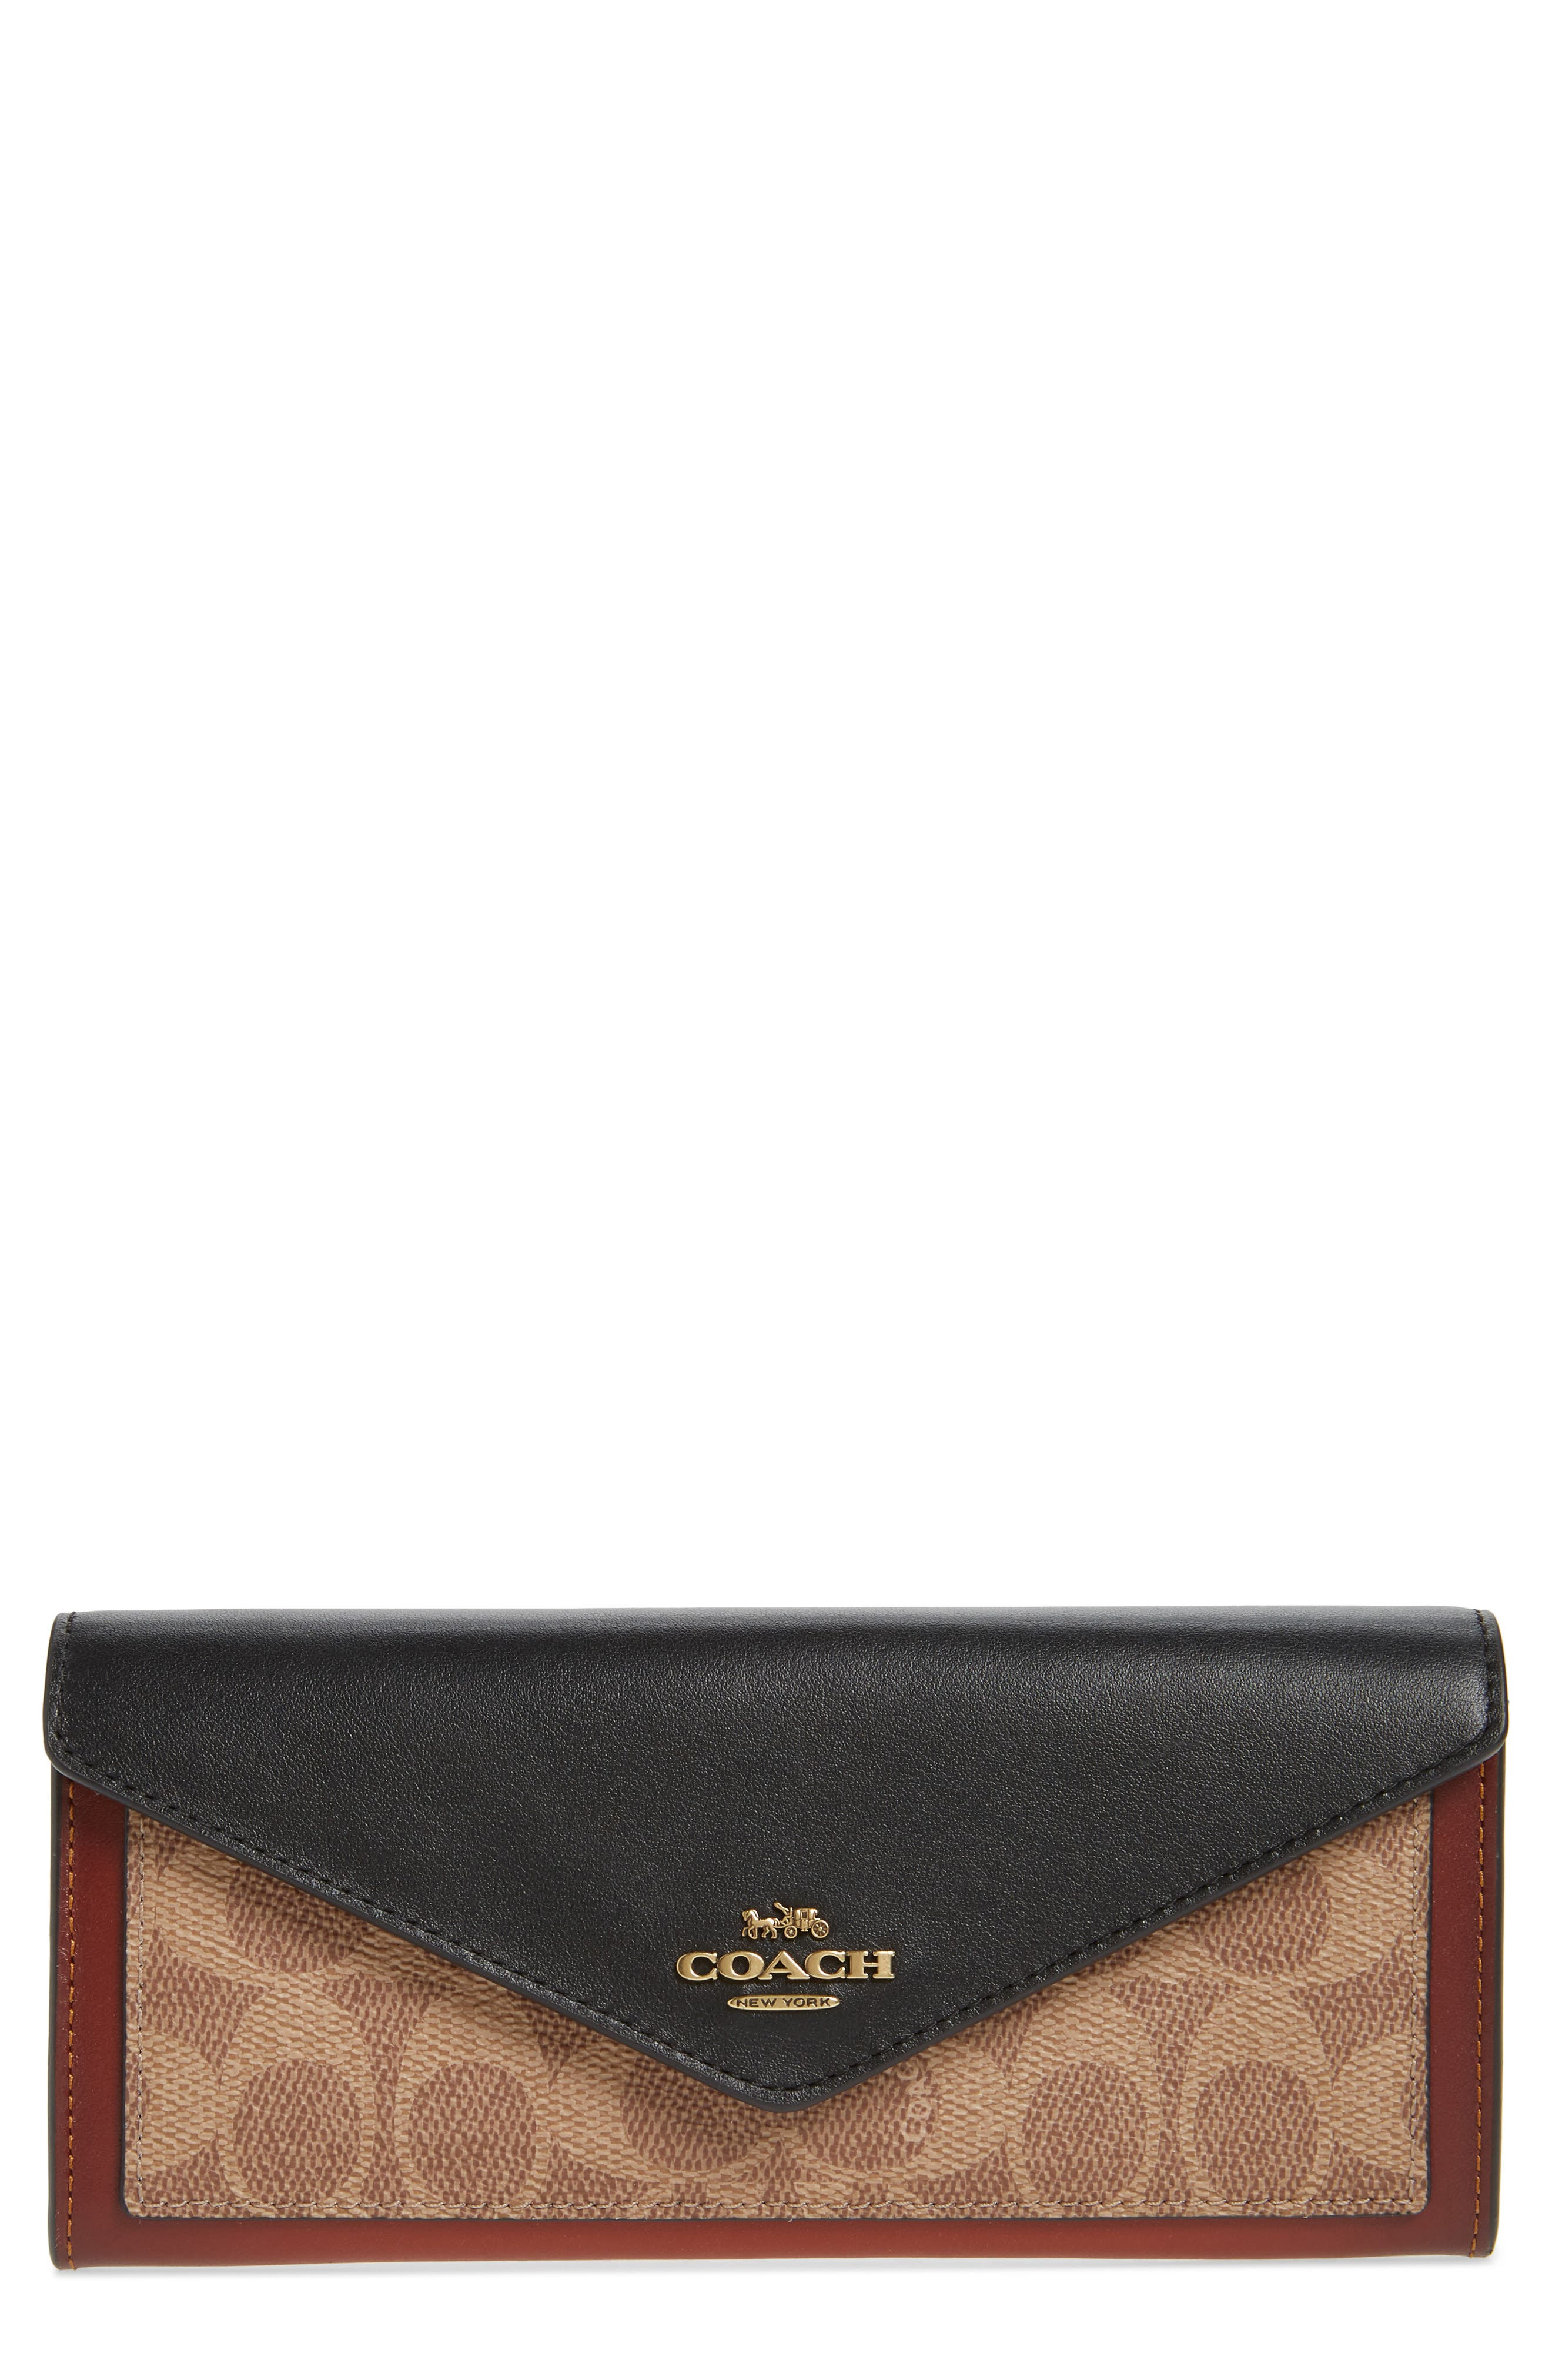 Colorblock Leather & Coated Canvas Wallet,                             Main thumbnail 1, color,                             TAN BLACK